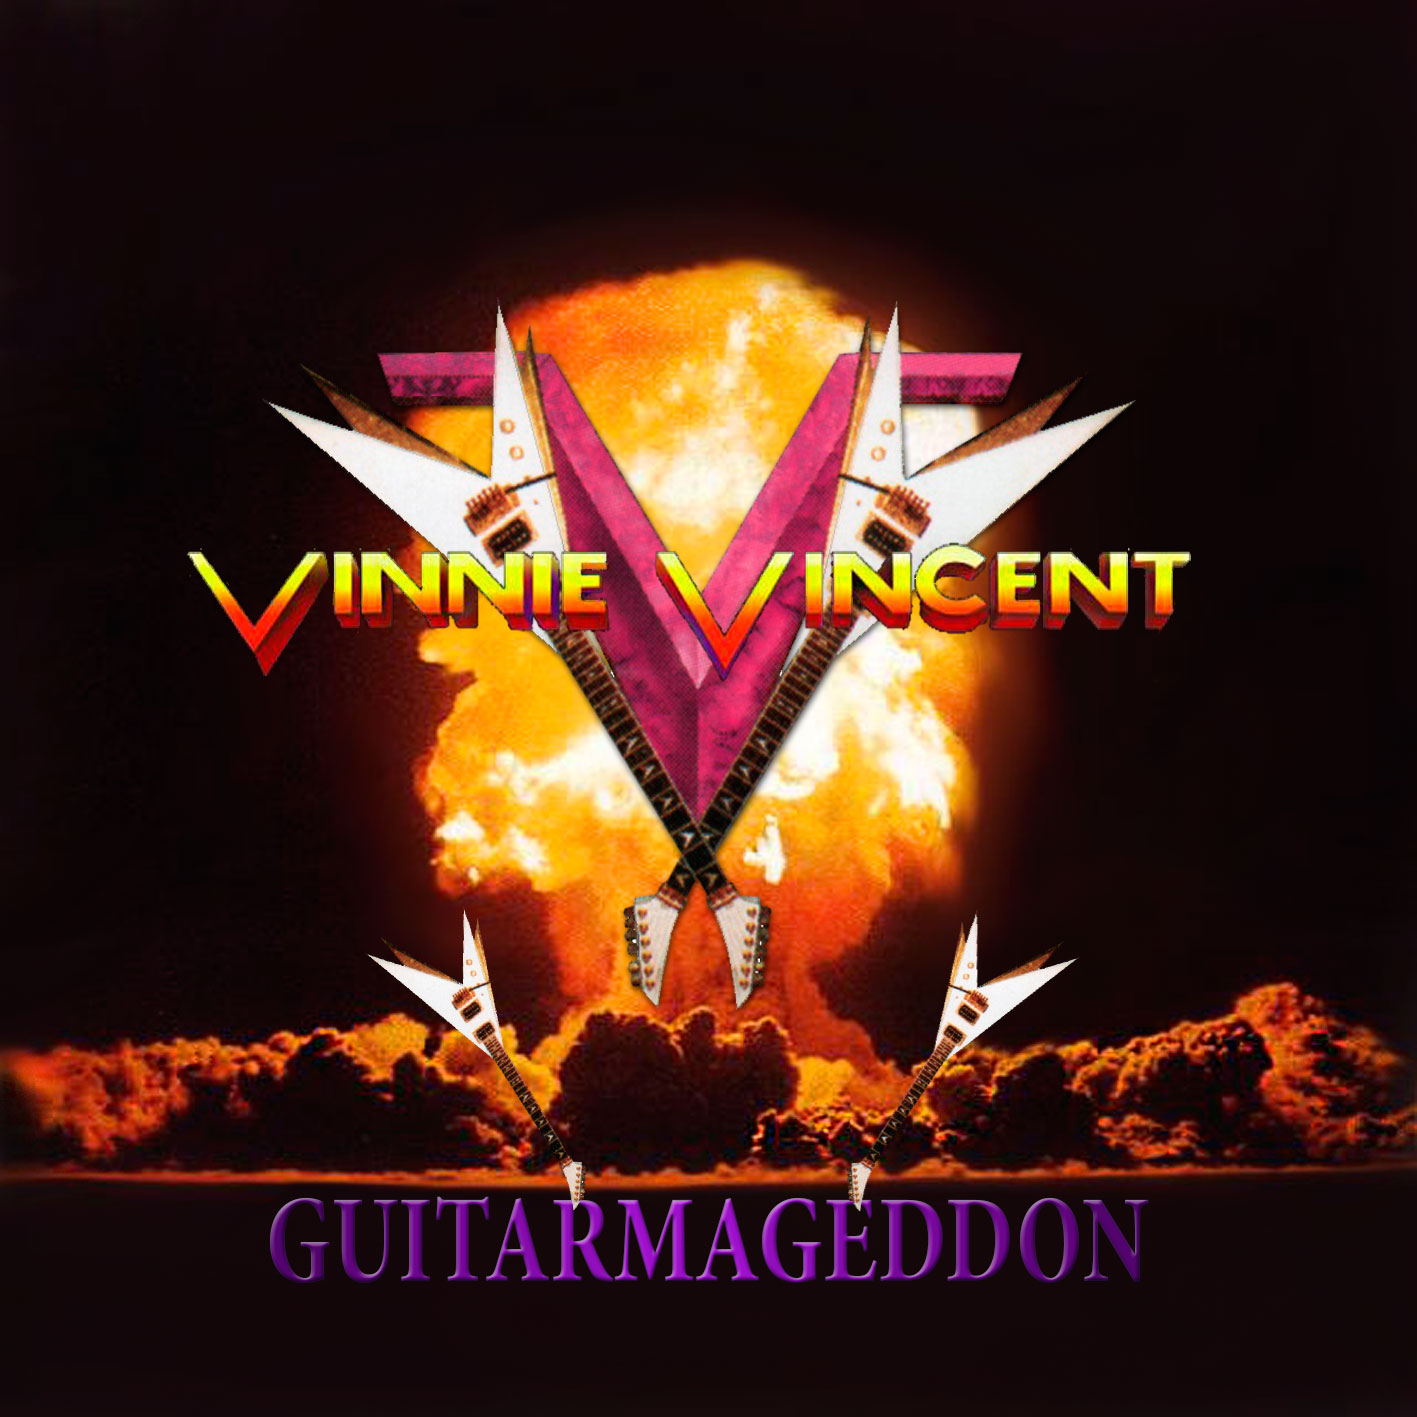 CD-cover-new-Guitarmageddon.jpg